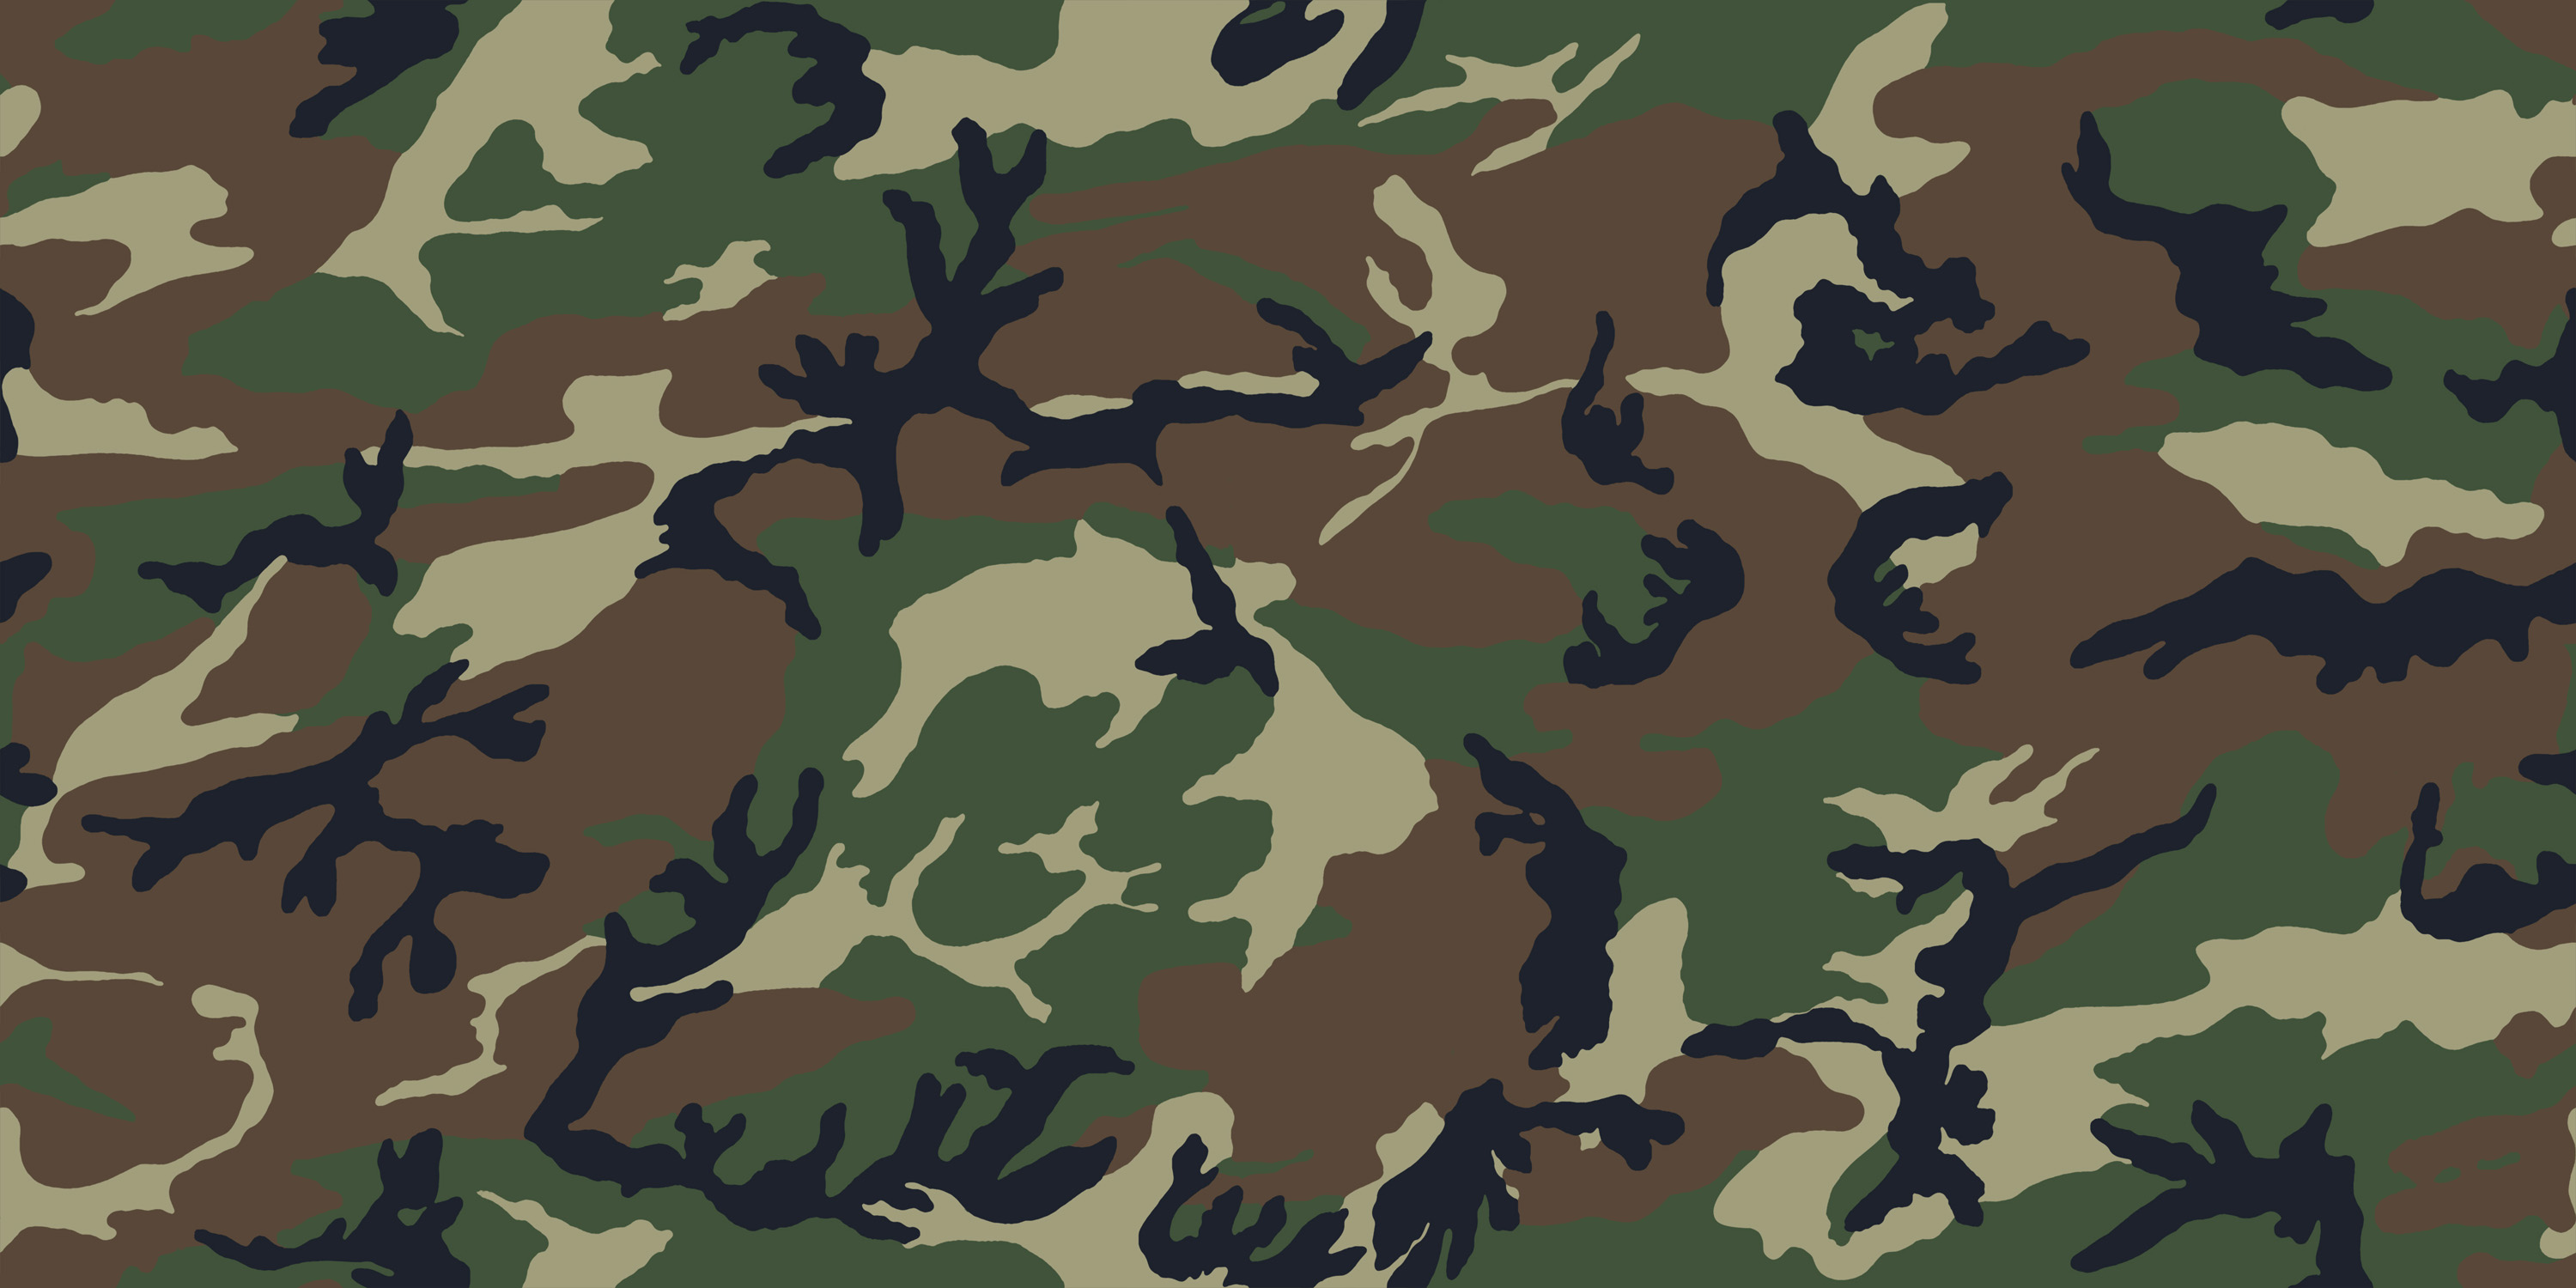 HD Camo Backgrounds 3000x1500